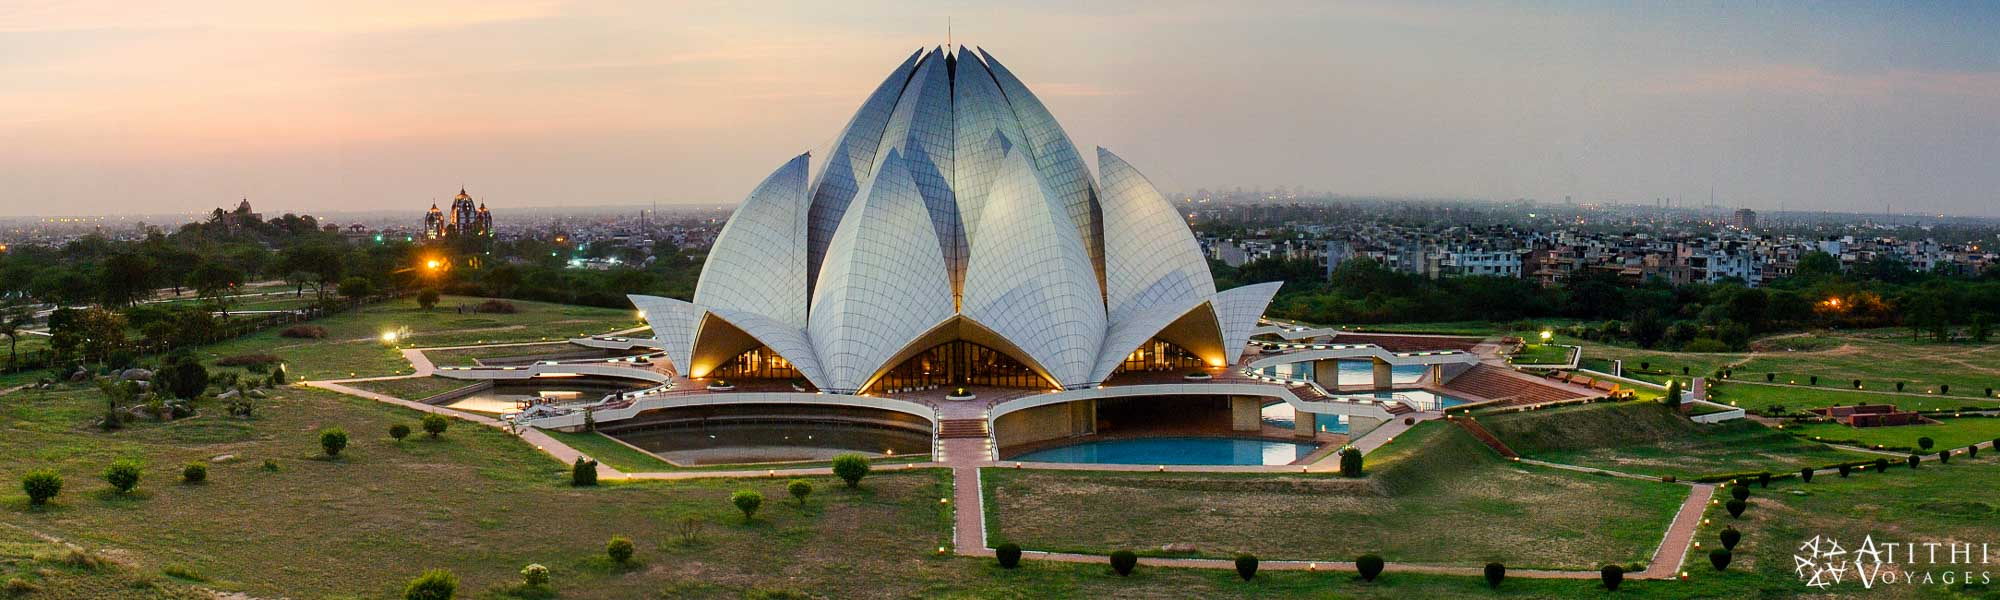 The-Lotus-Temple-at-Delhi-Delhi-Delhi-ratio_places